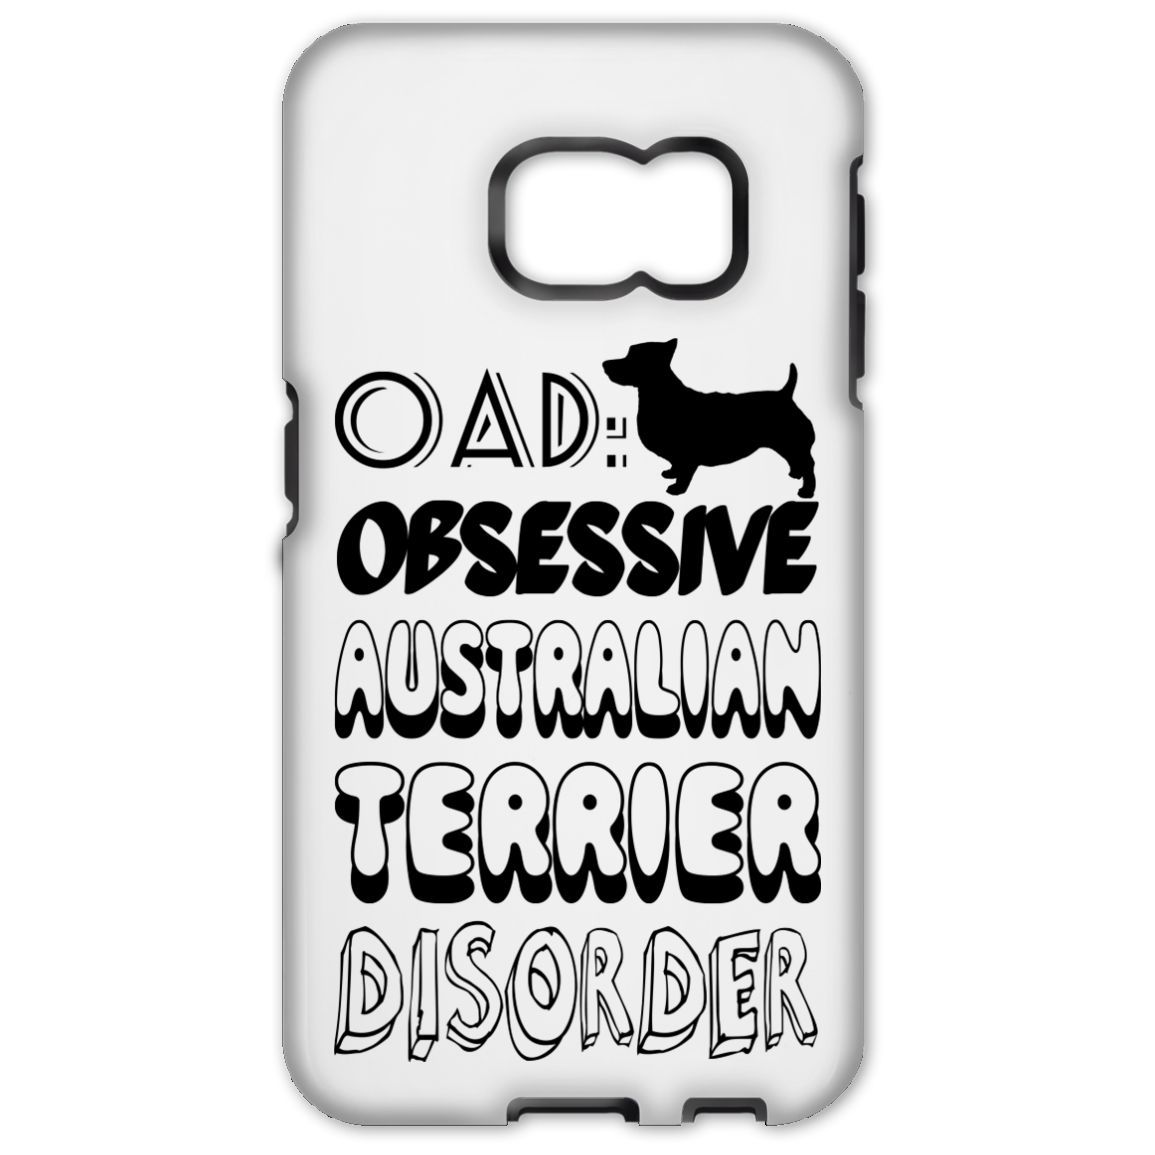 OAD Obsessive Australian Terrier Disorder Galaxy S6 Cases